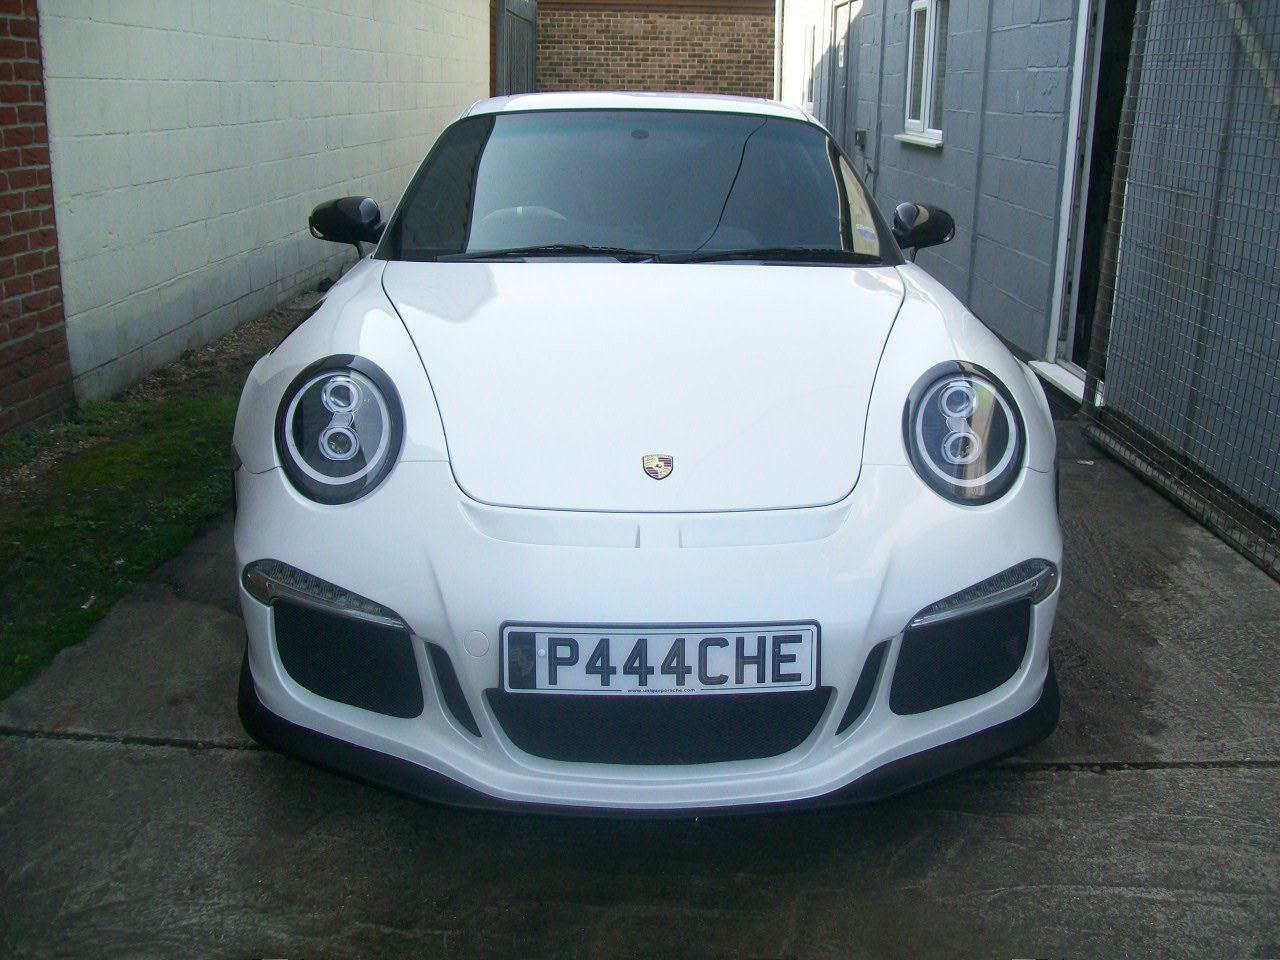 2001 Porsche 911 full gt3 conversion 3.9ltr hartech new For Sale (picture 2 of 6)